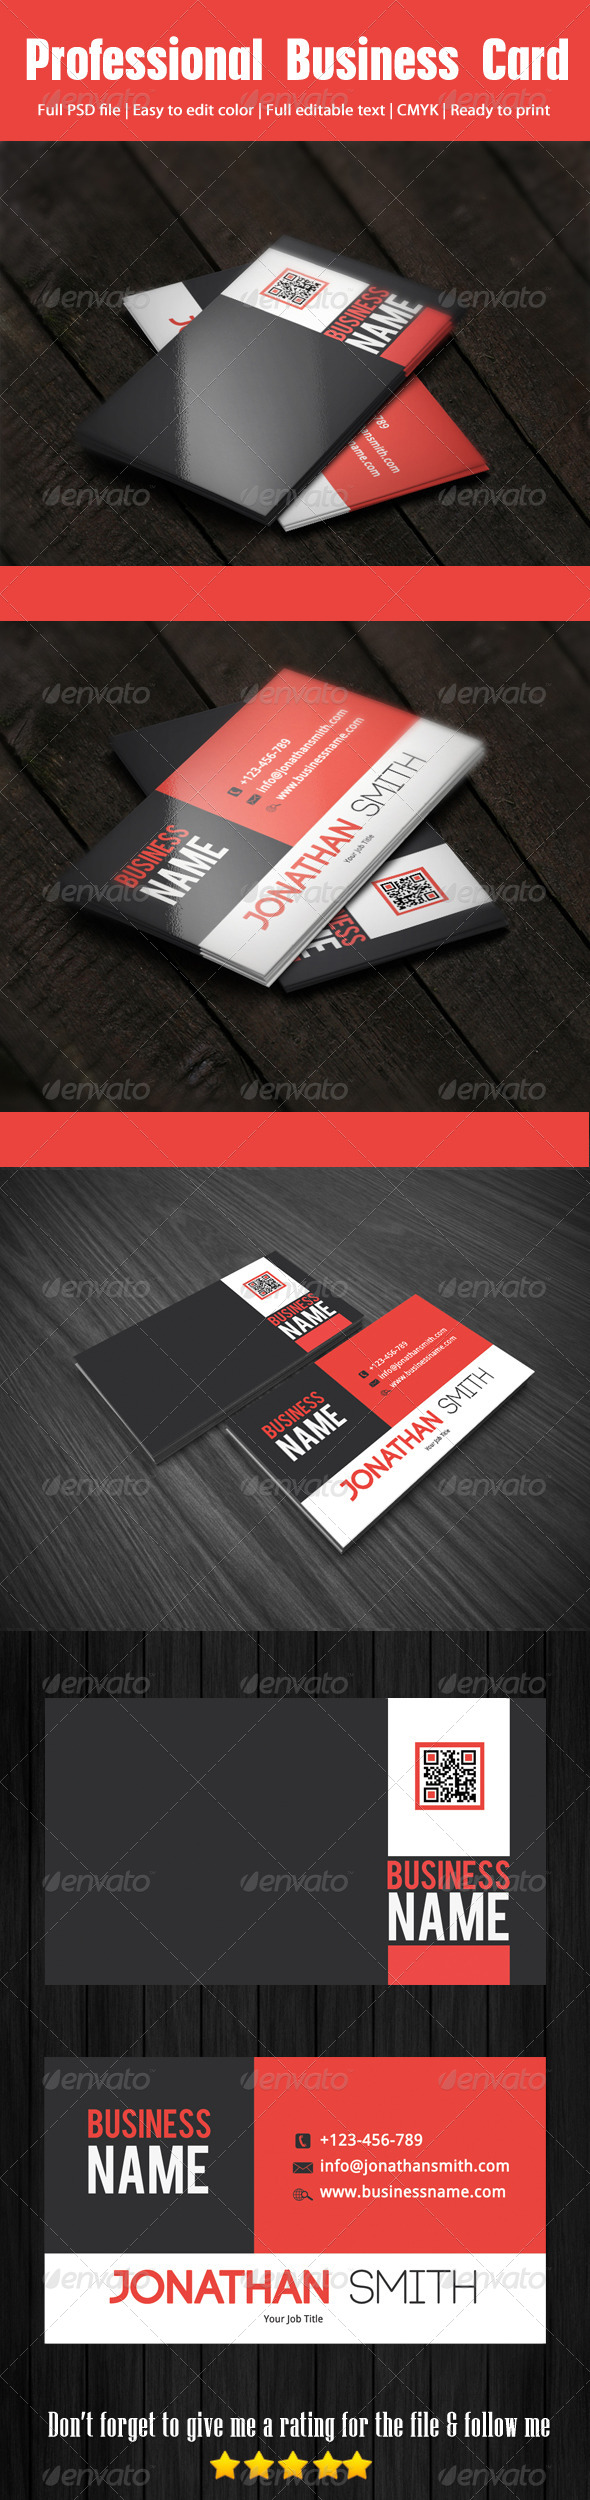 Professional Business Card | Fonts, Colors and Business card templates